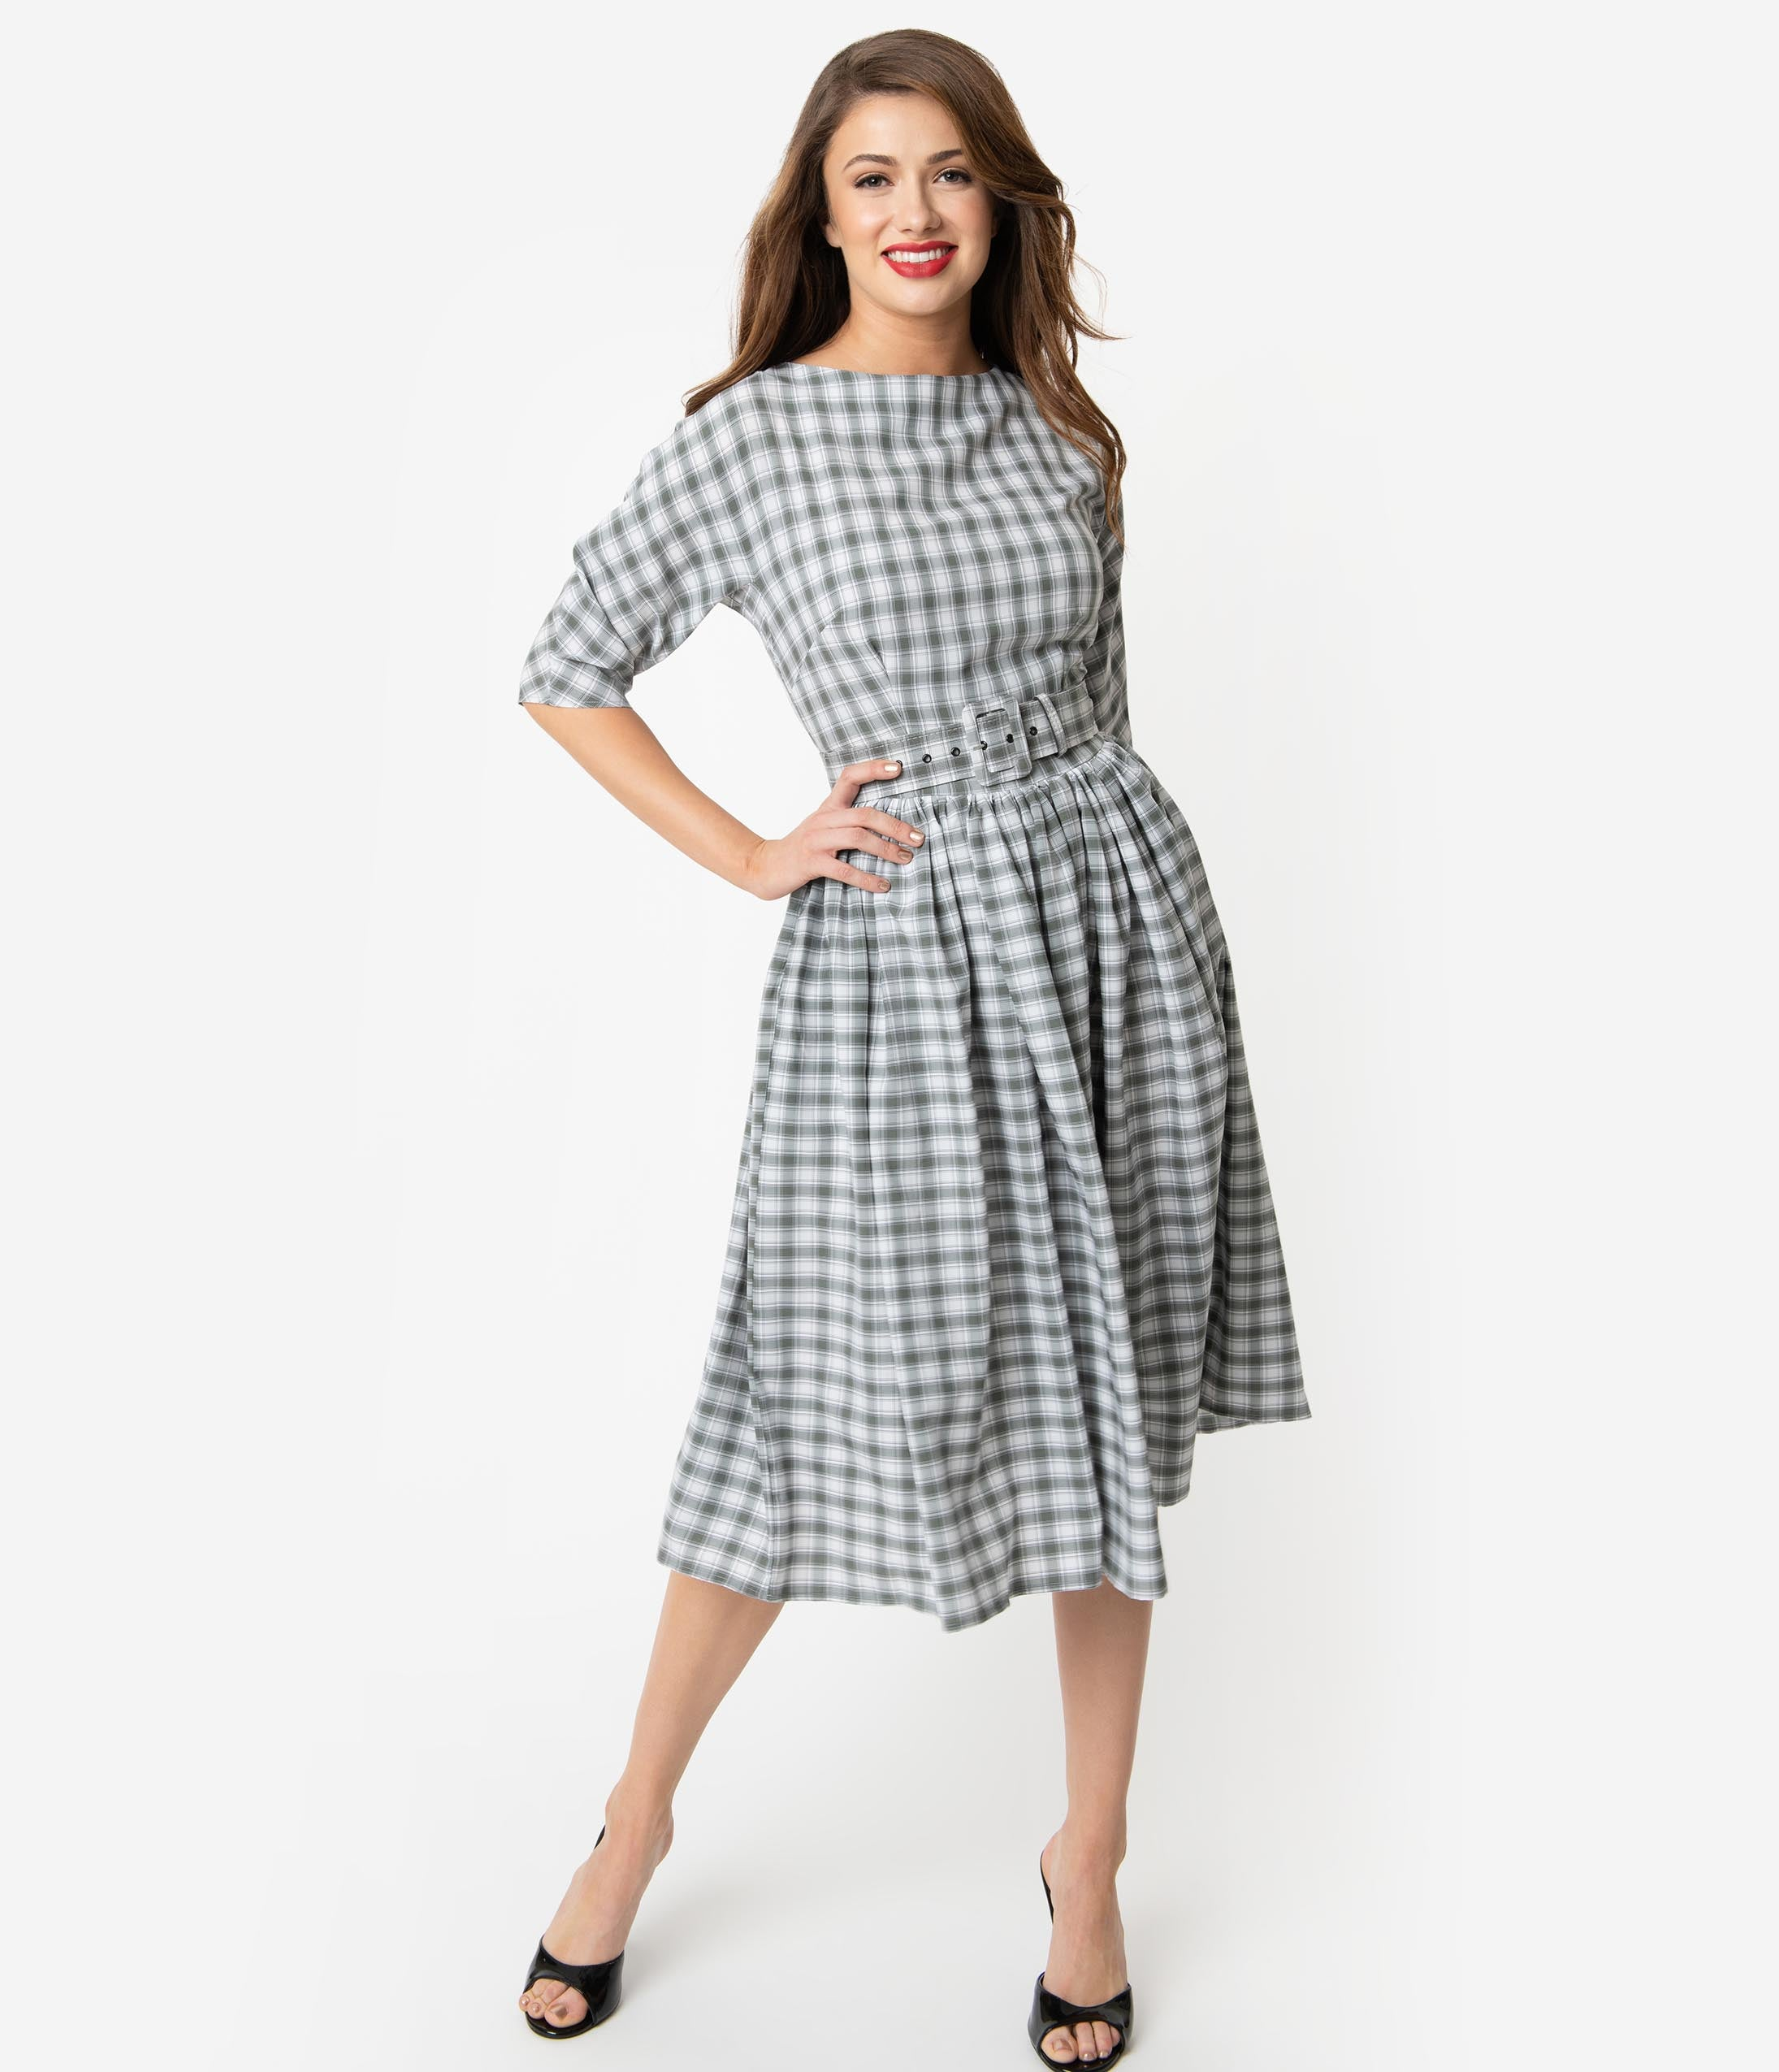 Swing Dance Dresses | Lindy Hop Dresses & Clothing Unique Vintage 1940S Style Grey  White Plaid Sleeved Sally Swing Dress $52.00 AT vintagedancer.com